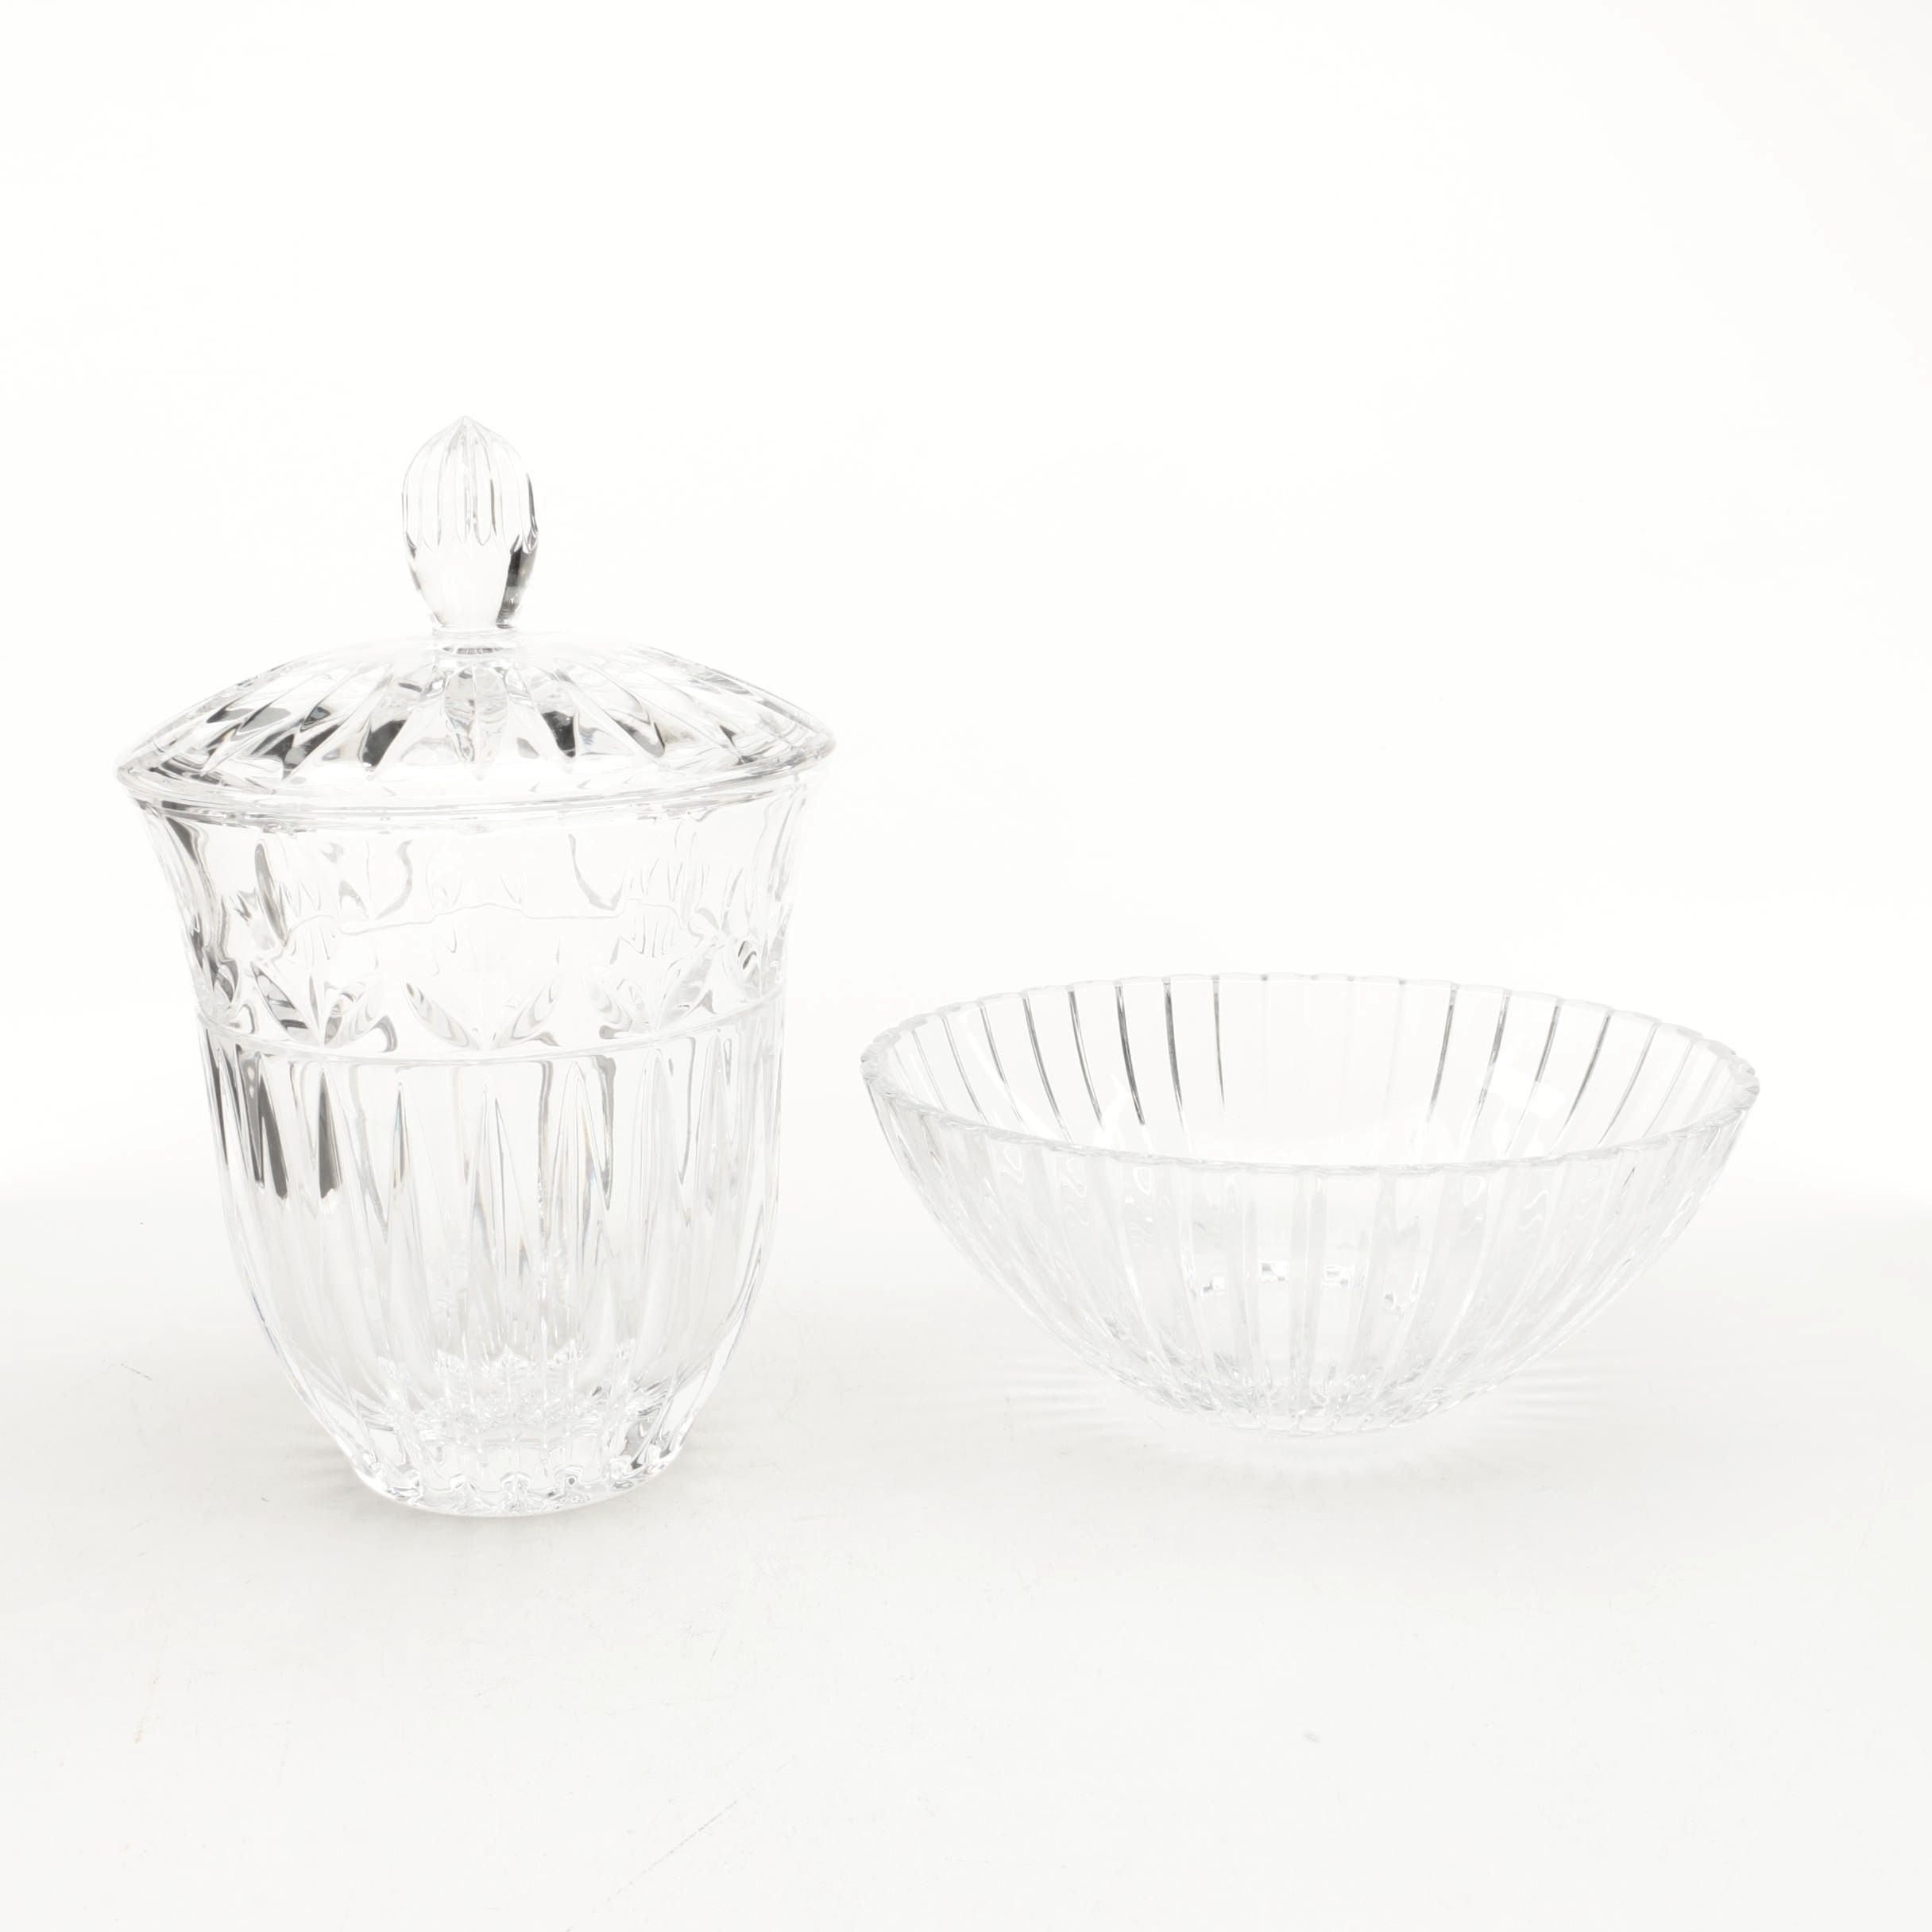 Lidded Crystal Container and Bowl